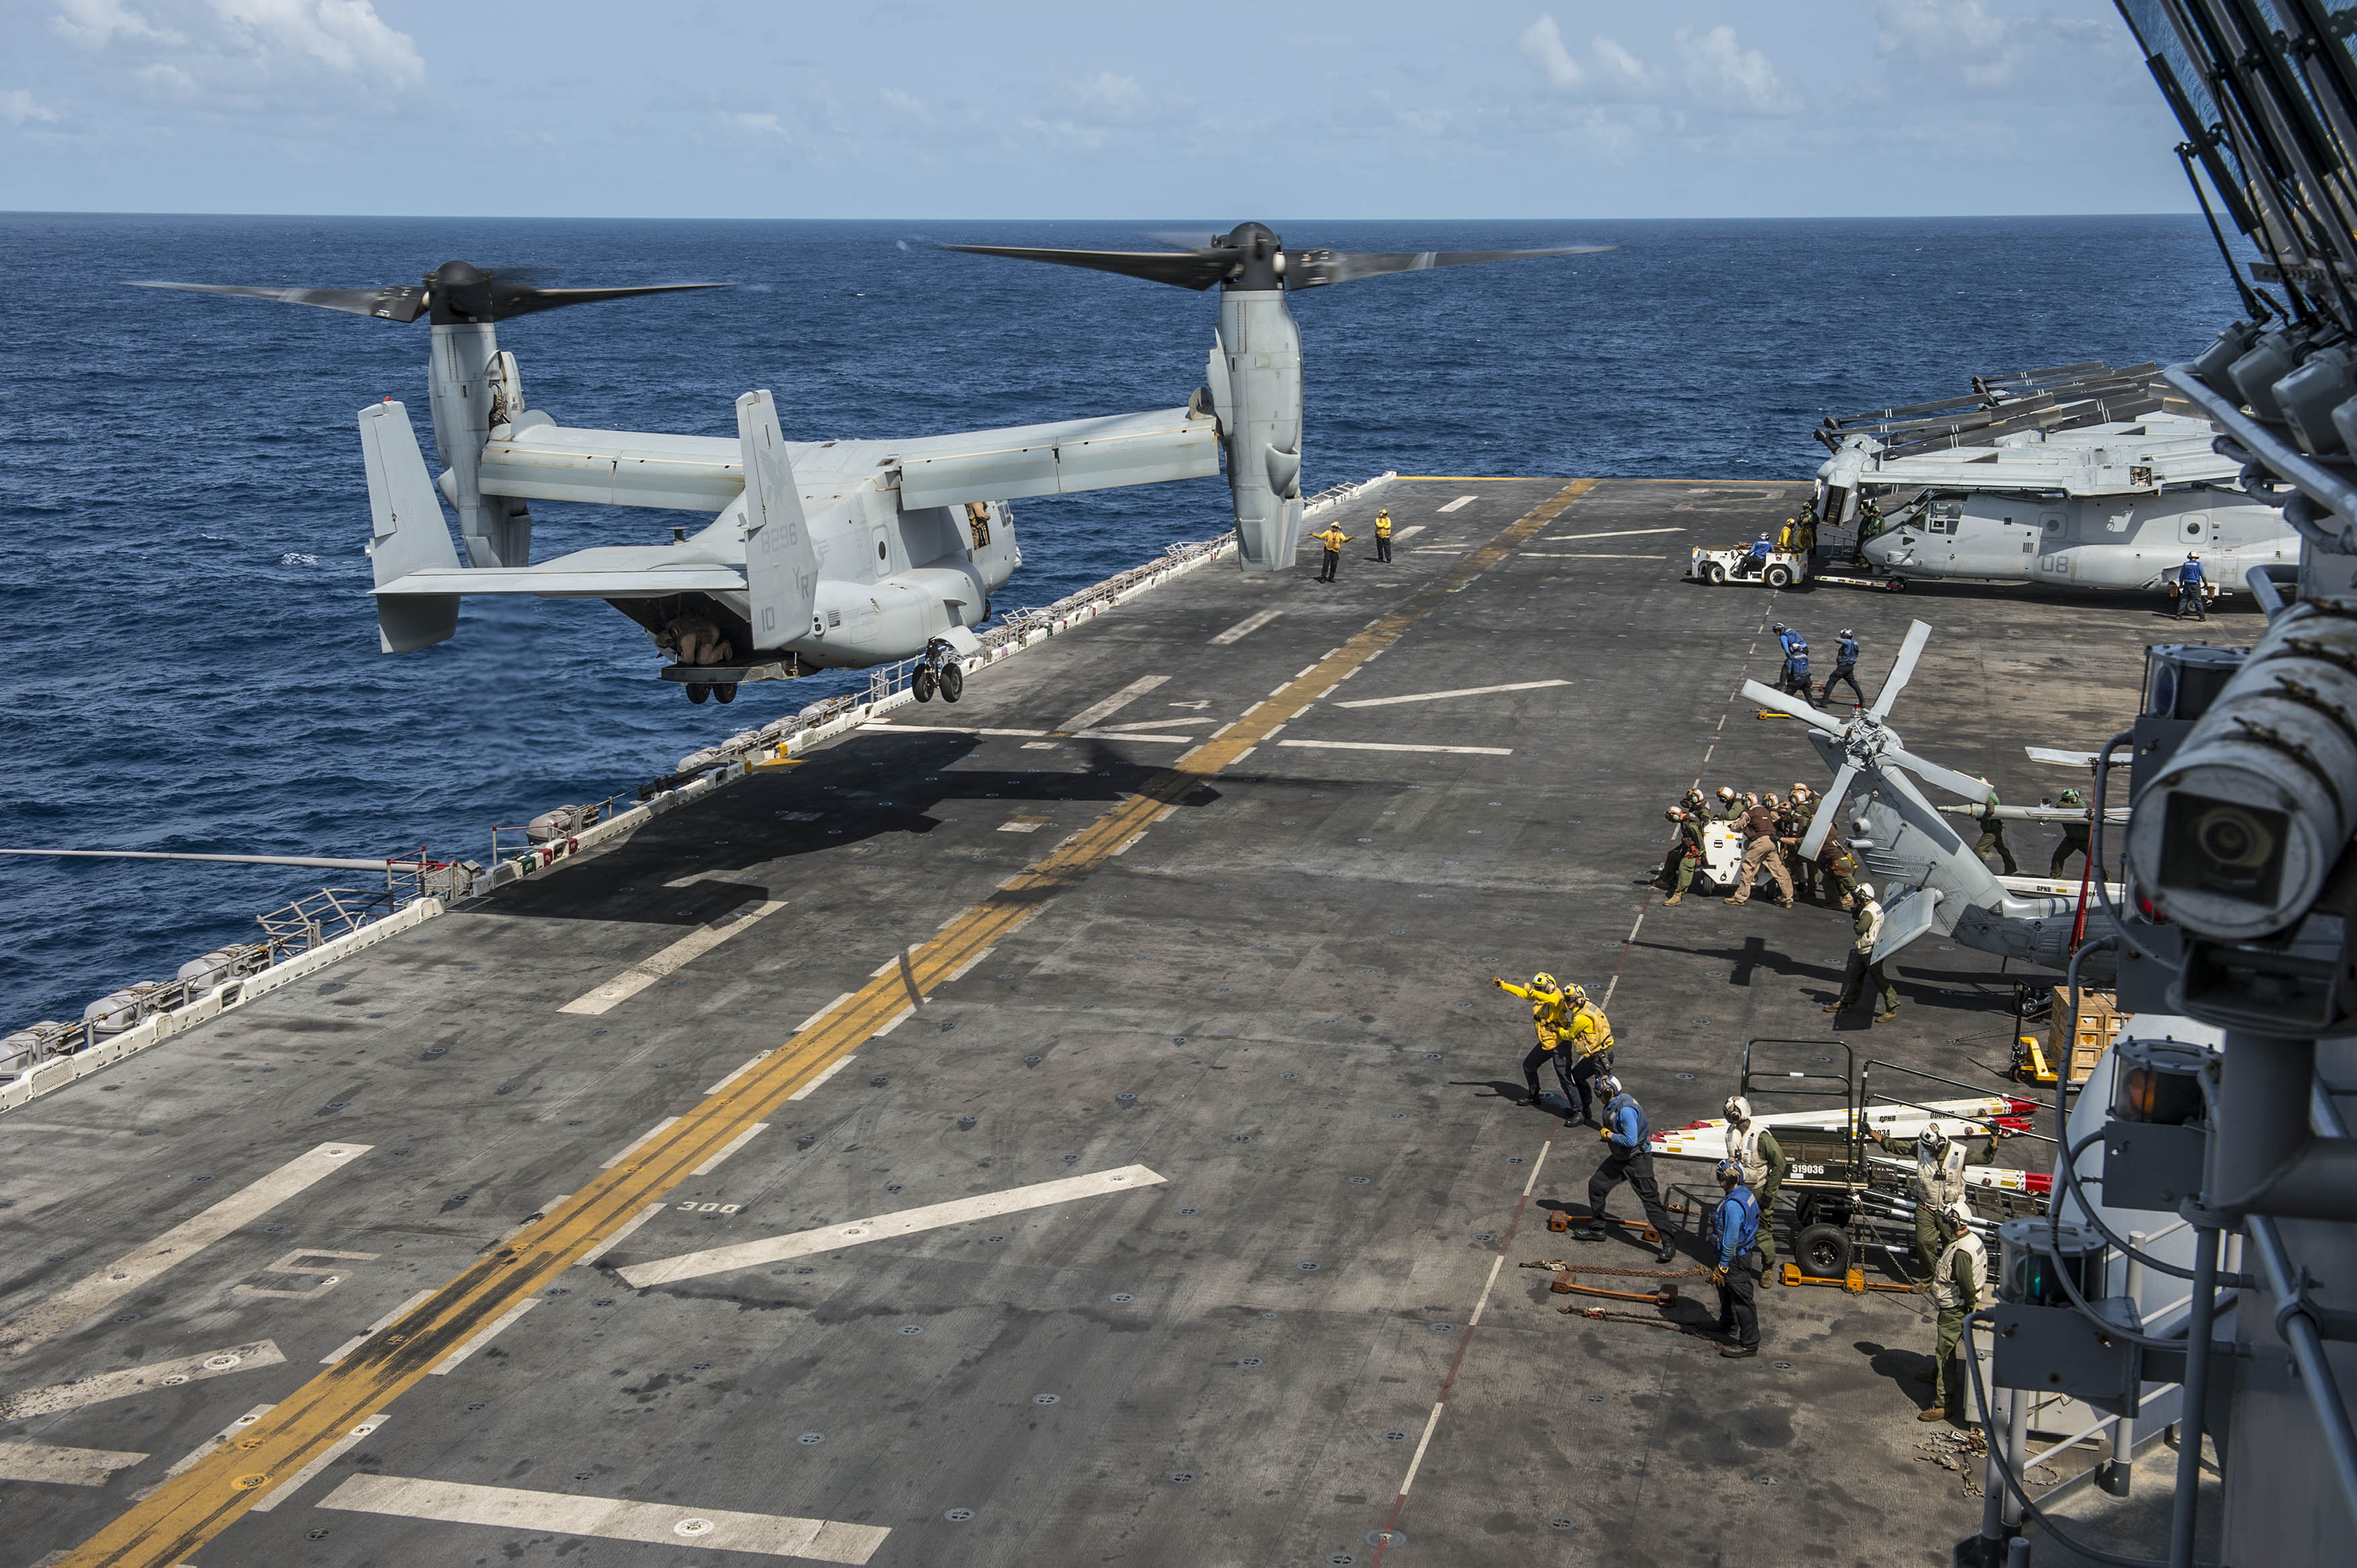 A MV-22B Osprey from the Greyhawks of Marine Medium-lift Tiltrotor Squadron 161 (Reinforced) lands on the flight deck of the Wasp-class amphibious assault ship USS Essex (LHD-2) in 2015. US Navy Photo